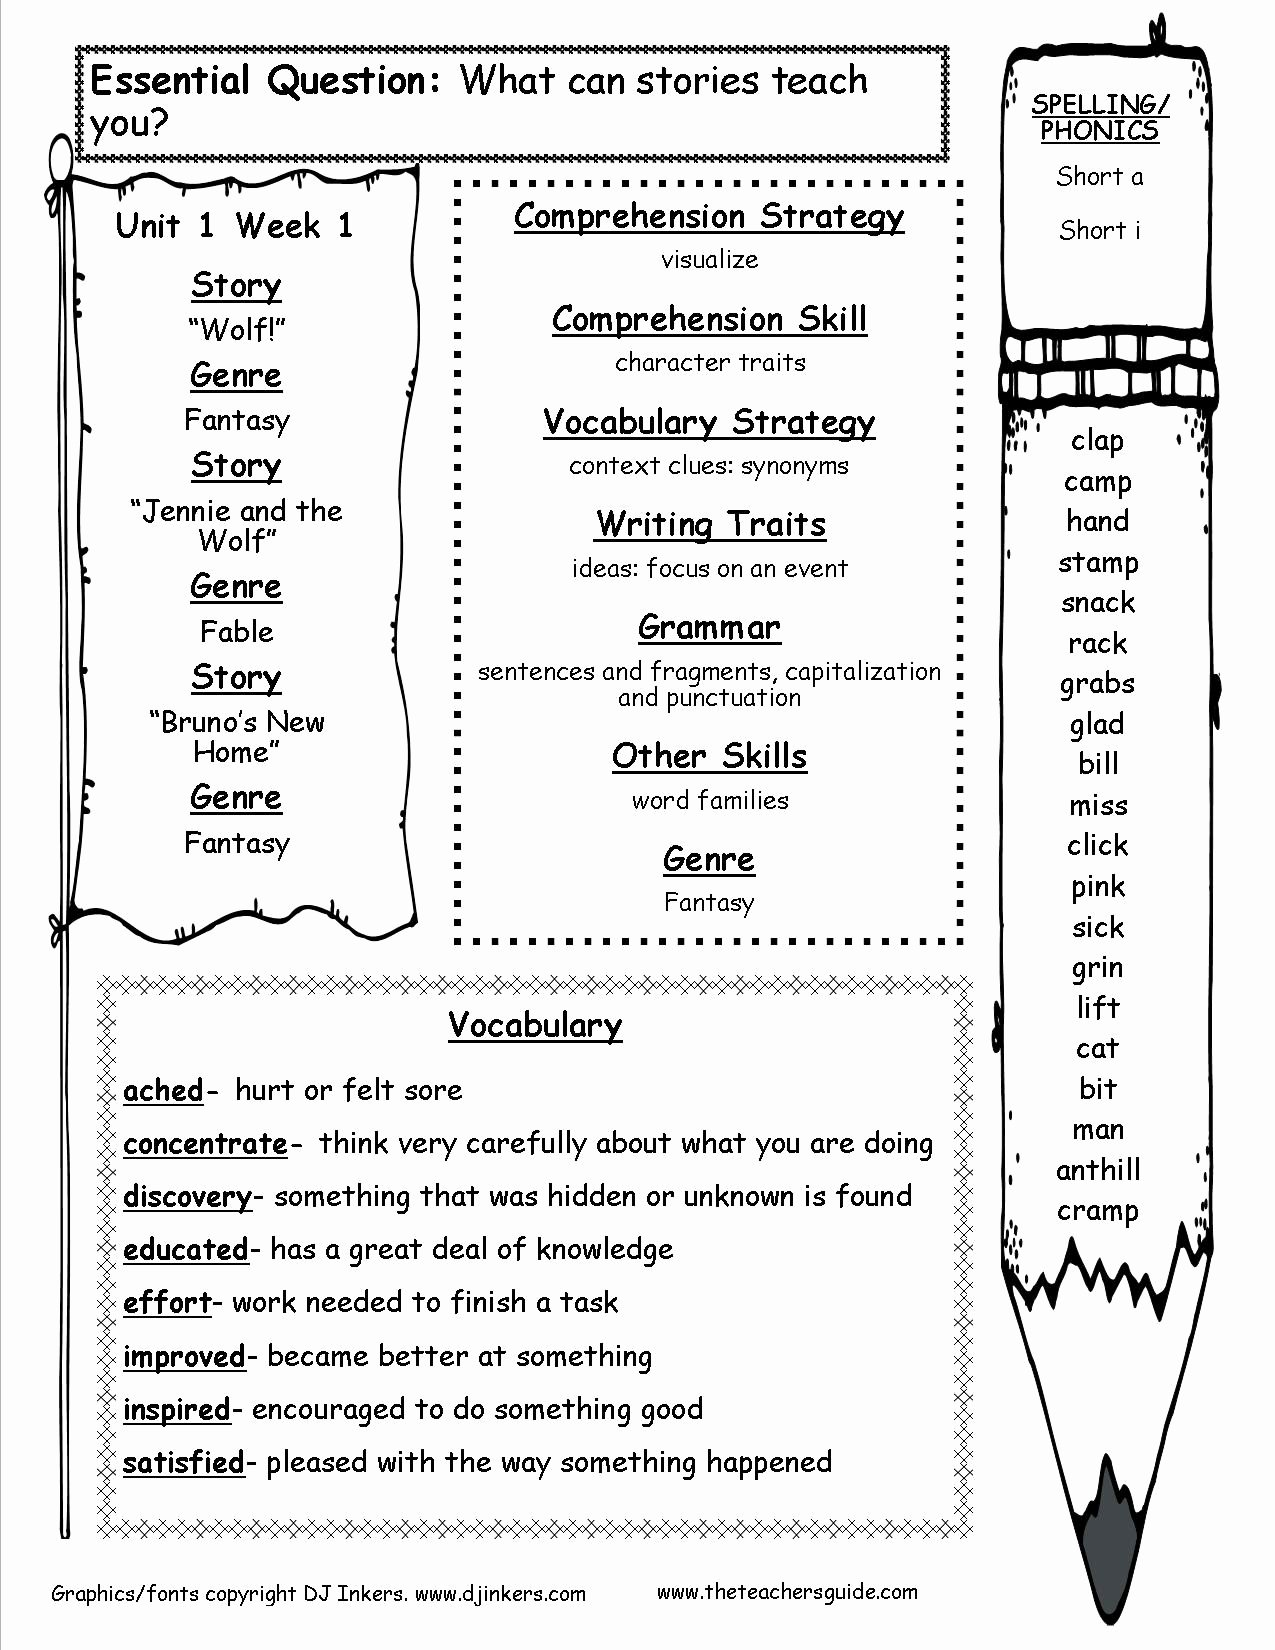 Character Traits Worksheet 3rd Grade Inspirational 1st Grade Character Traits Worksheets